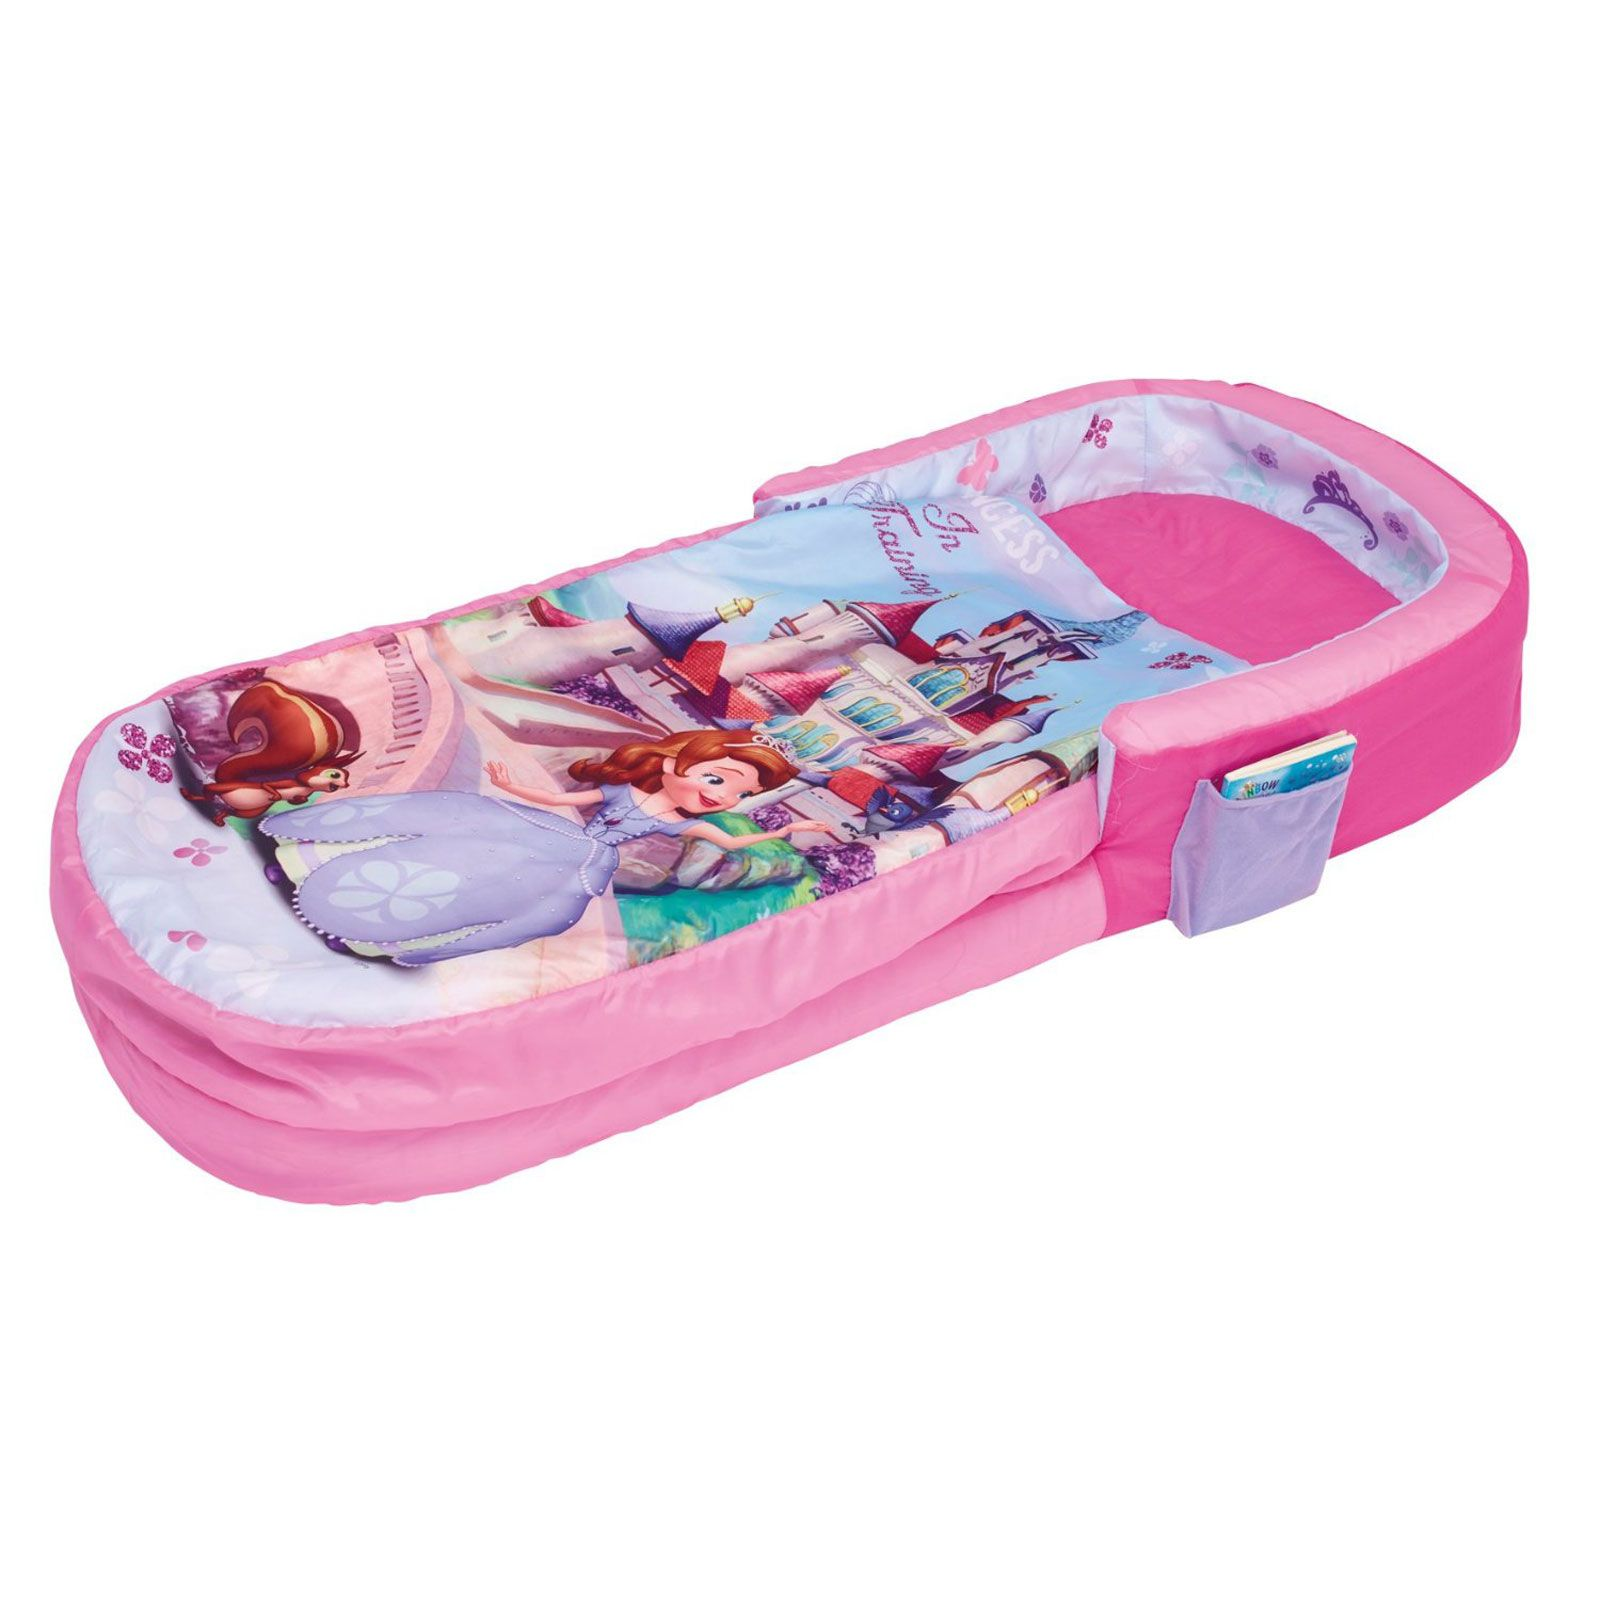 KIDS READY BED INFLATABLE AIR BEDS IDEAL FOR